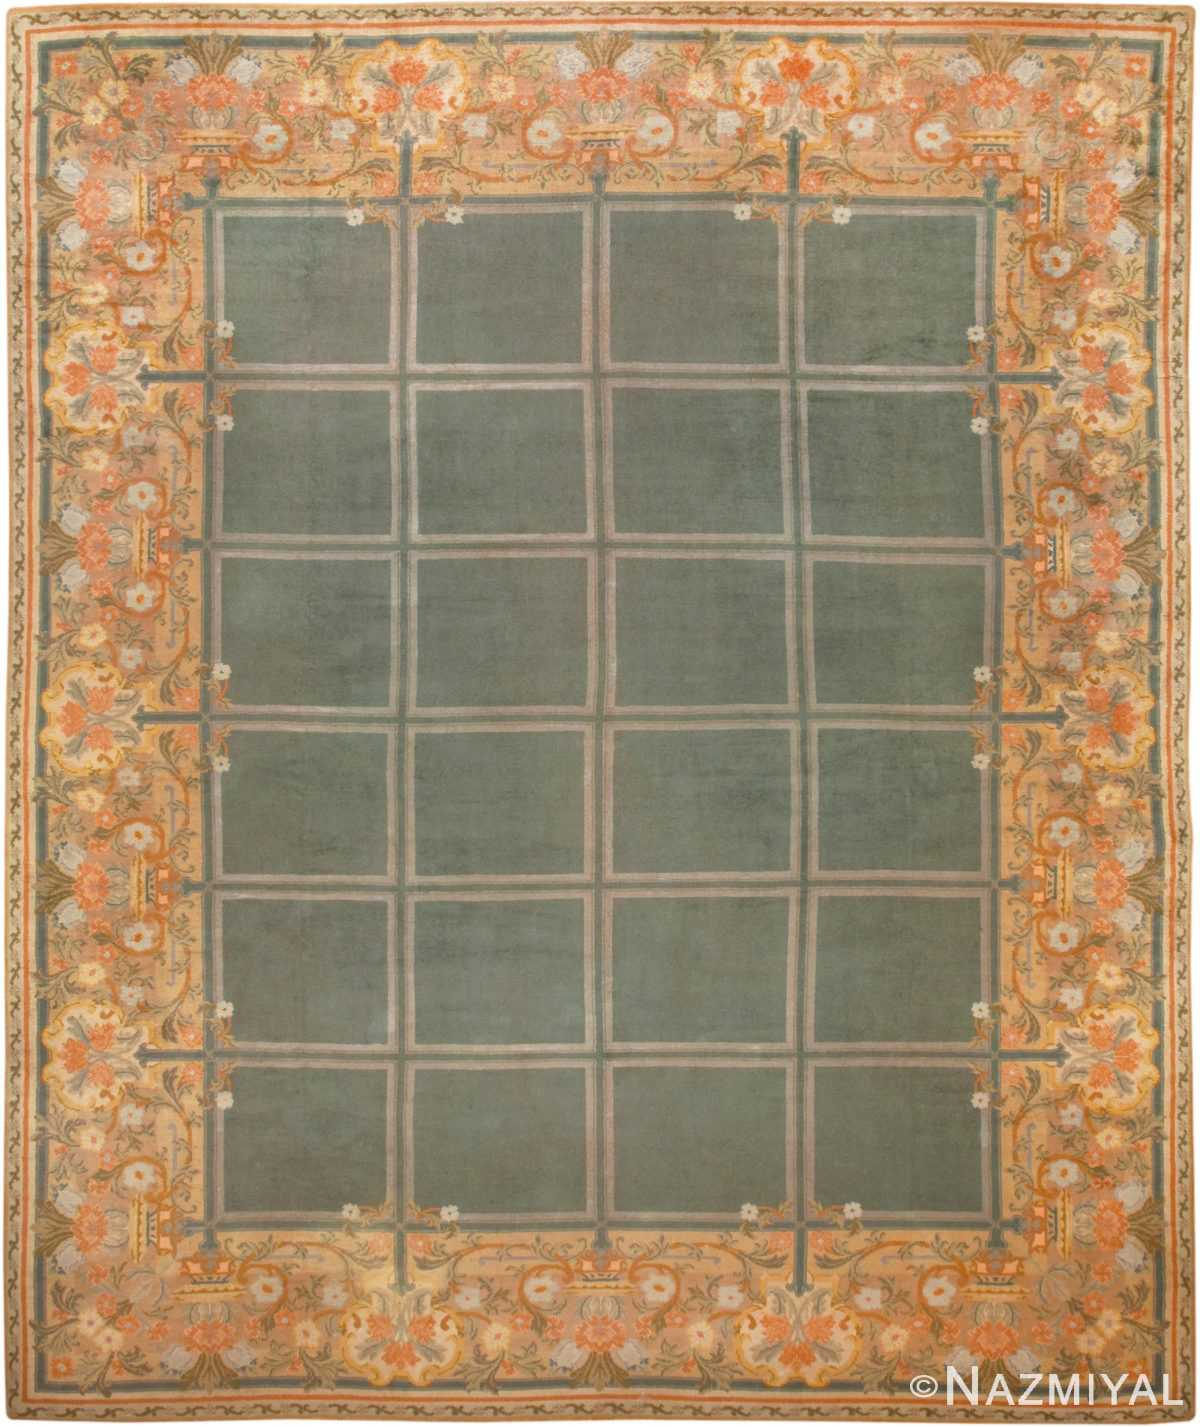 Picture of a Breathtaking Floral and Grid DesignLarge Size Green Background Color Antique Spanish Savonnerie Carpet #49845 from Nazmiyal Antique Rugs in NYC